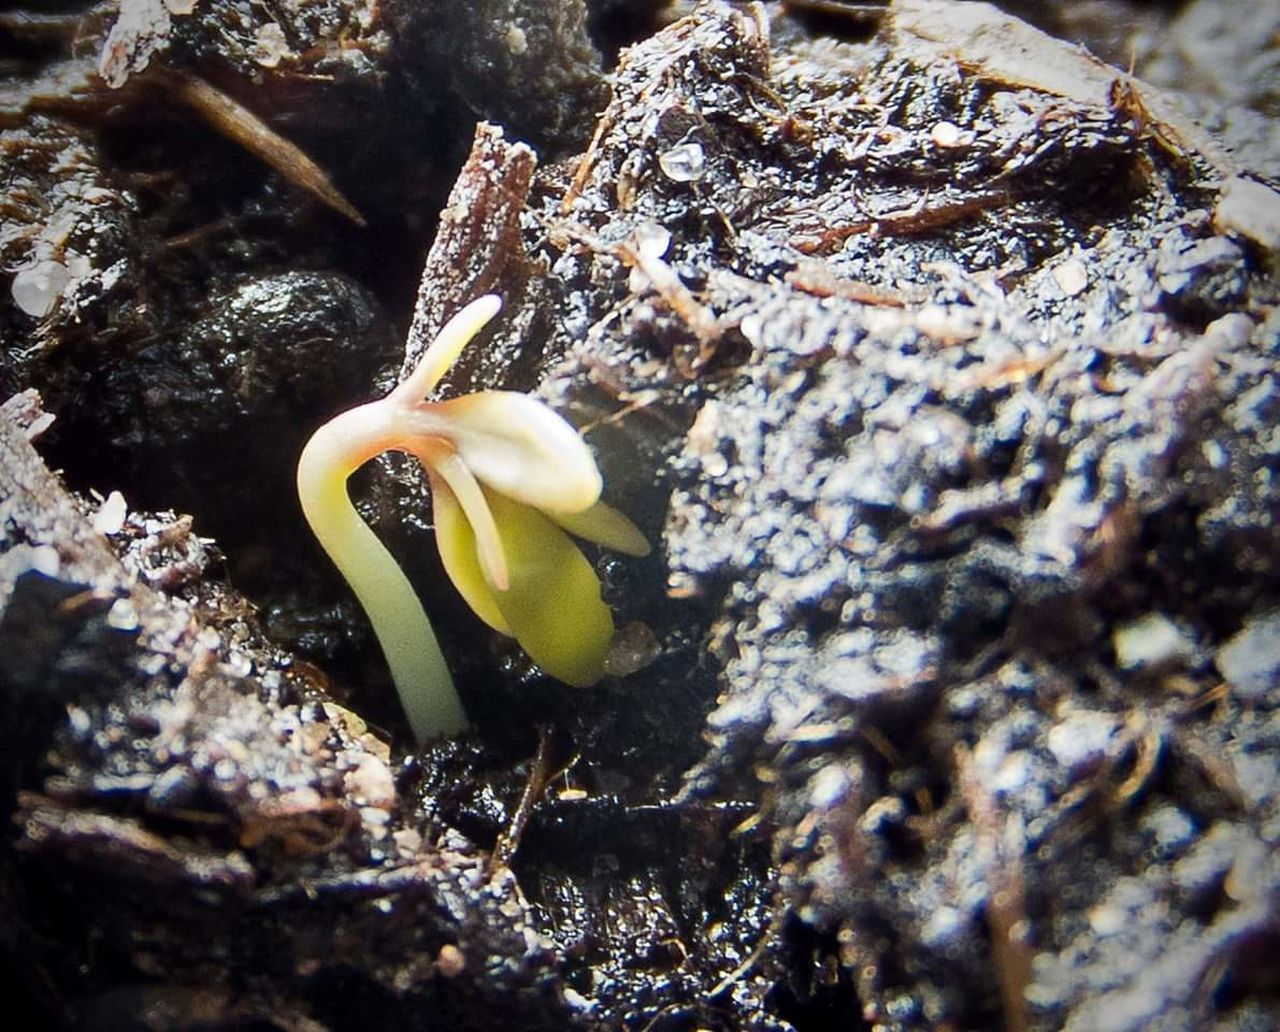 Emerging seedling Seedling Earth Porn Growing Growing Vegetables Plant Plantlife Emergence, New Life & New Hope Spring Springtime Garden Gardening Cotyledon Reaching For The Sky Nature Grow Your Own Homegrown